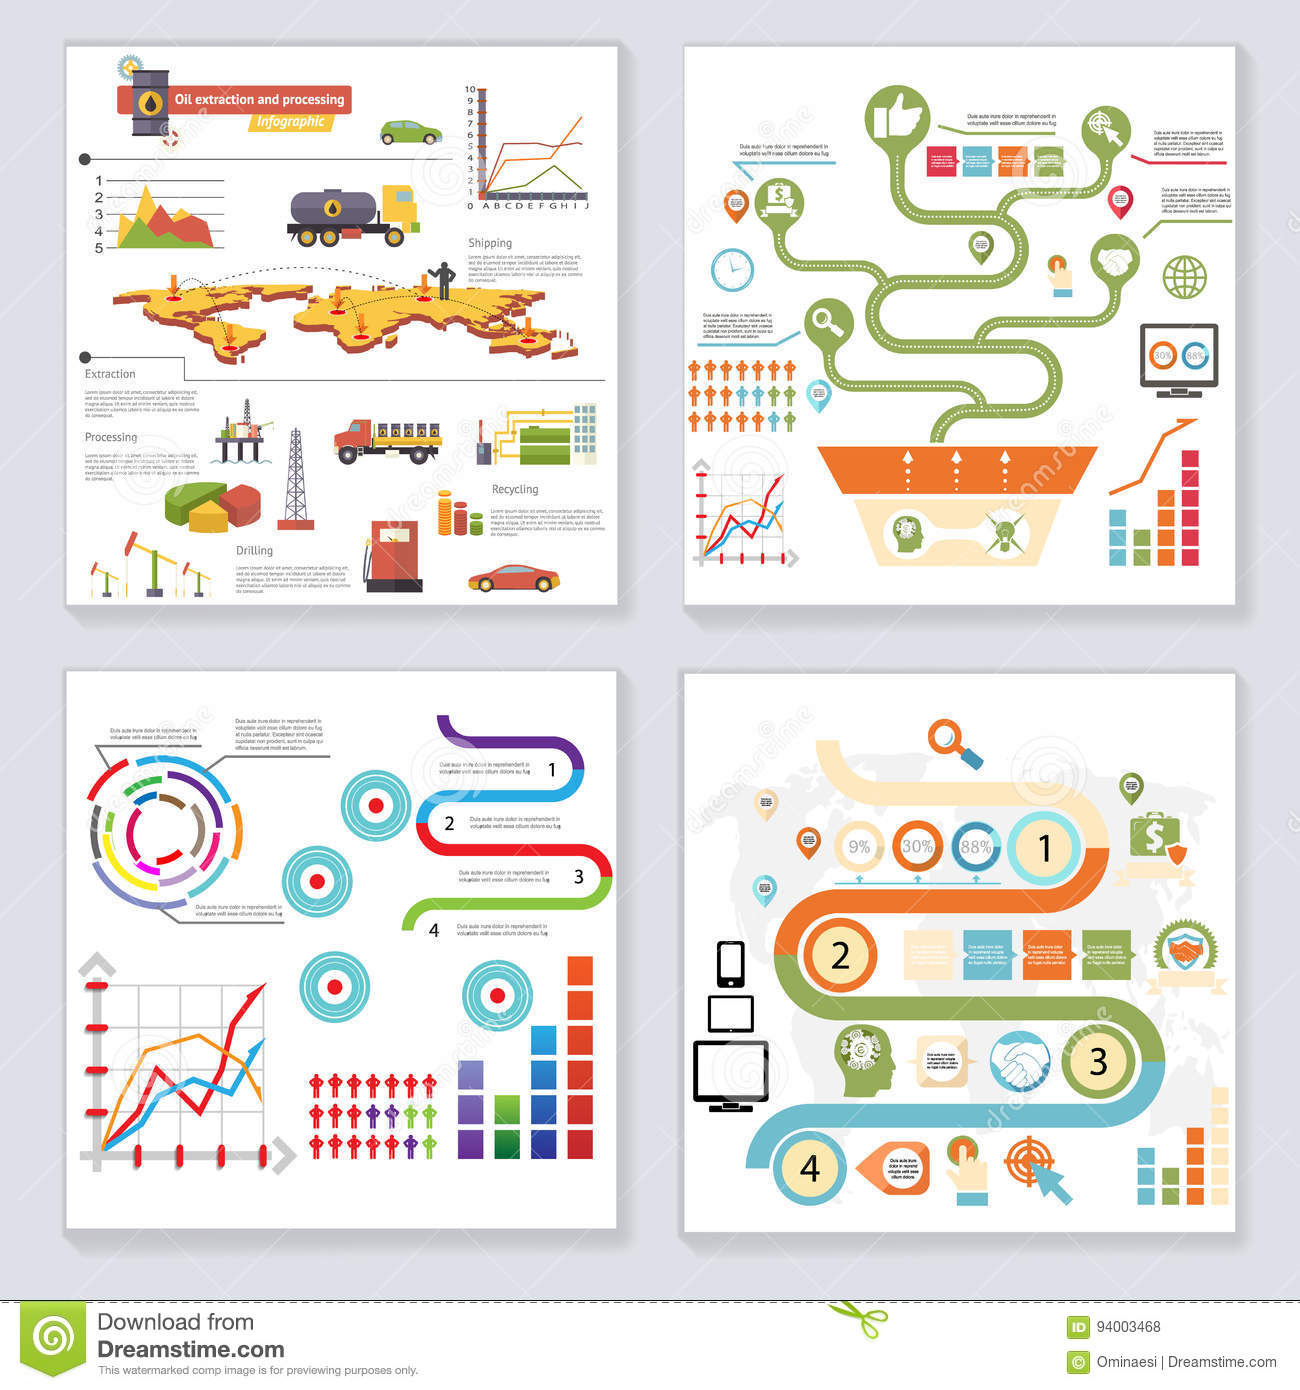 Infographics elements symbols and icons retro style design template infographics elements symbols and icons retro style design template on stylish abstract background vector illustration buycottarizona Gallery